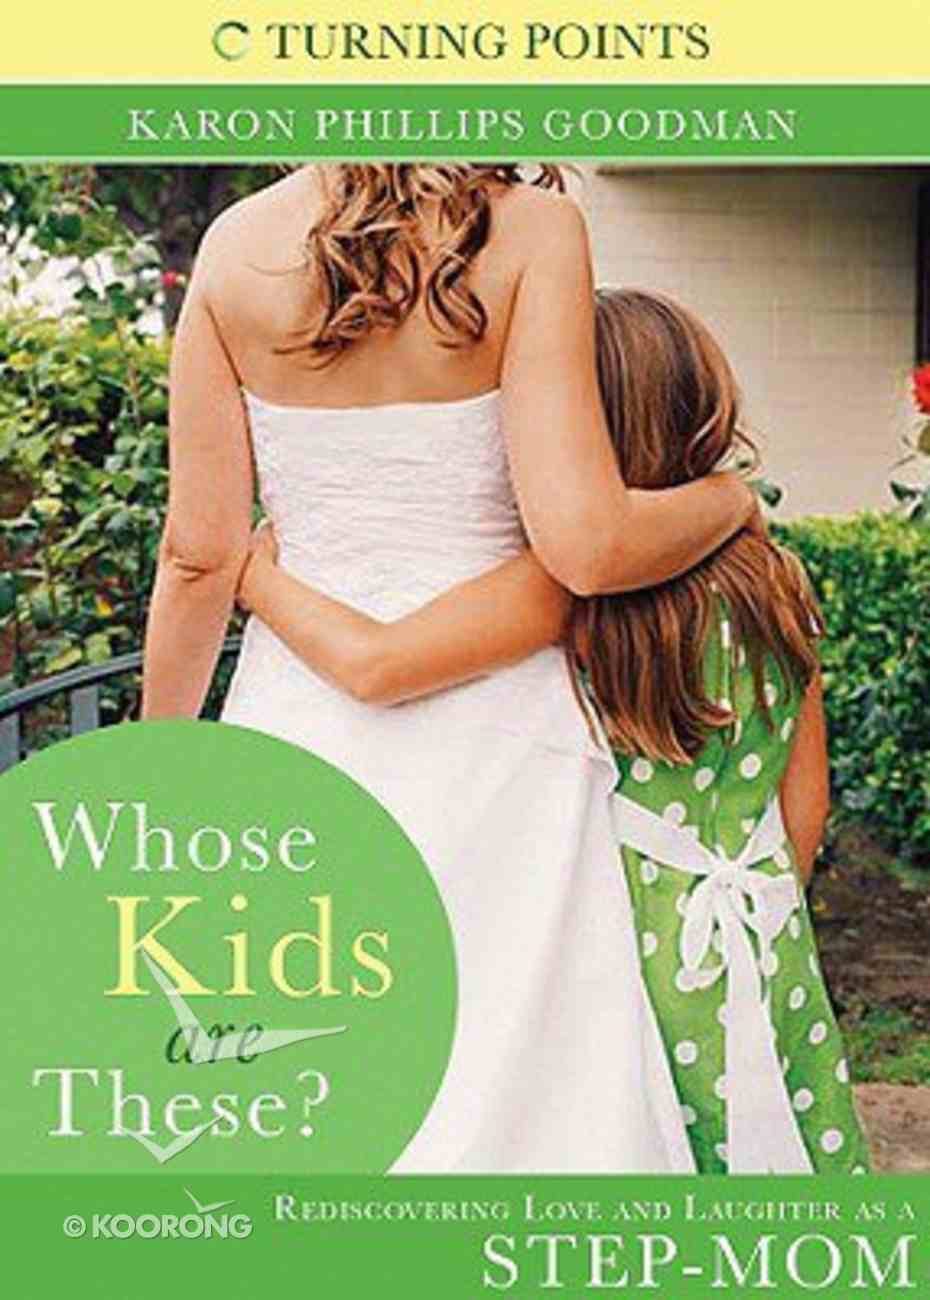 Turning Point: Whose Kids Are These? Paperback